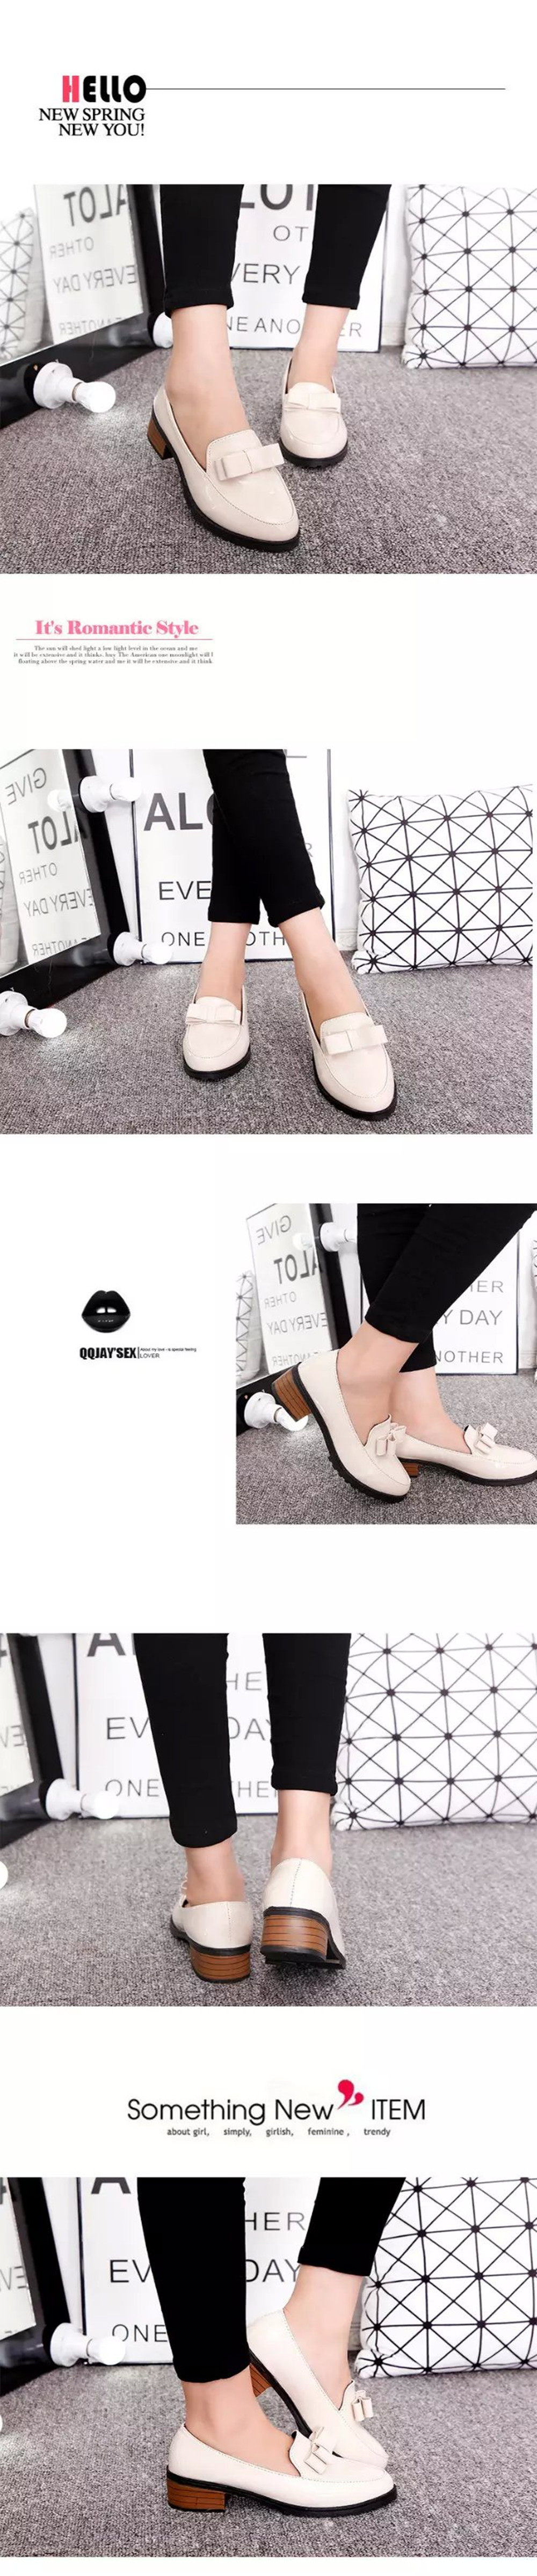 Bow-tie Shallow-mouth Chaussures pour femmes